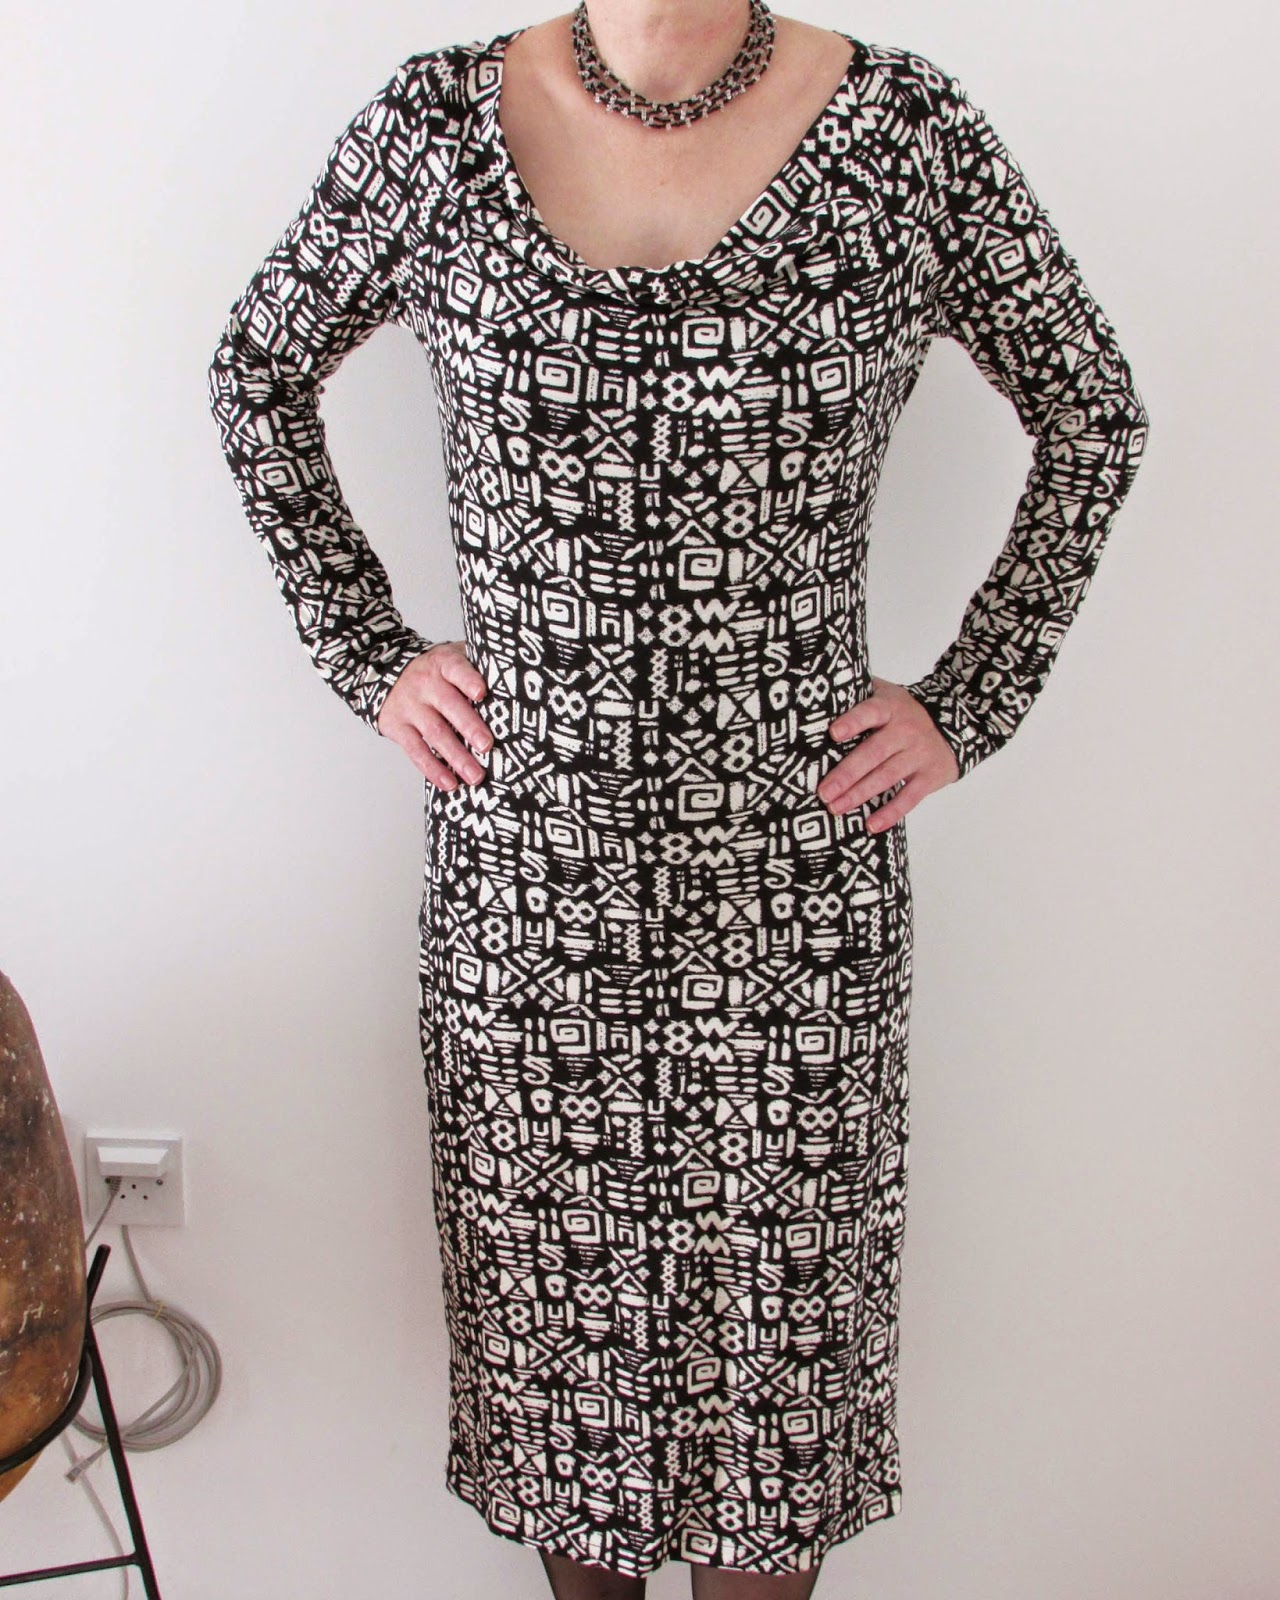 http://ladylinaland.blogspot.com/2015/02/long-sleeve-cowl-neck-dress.html